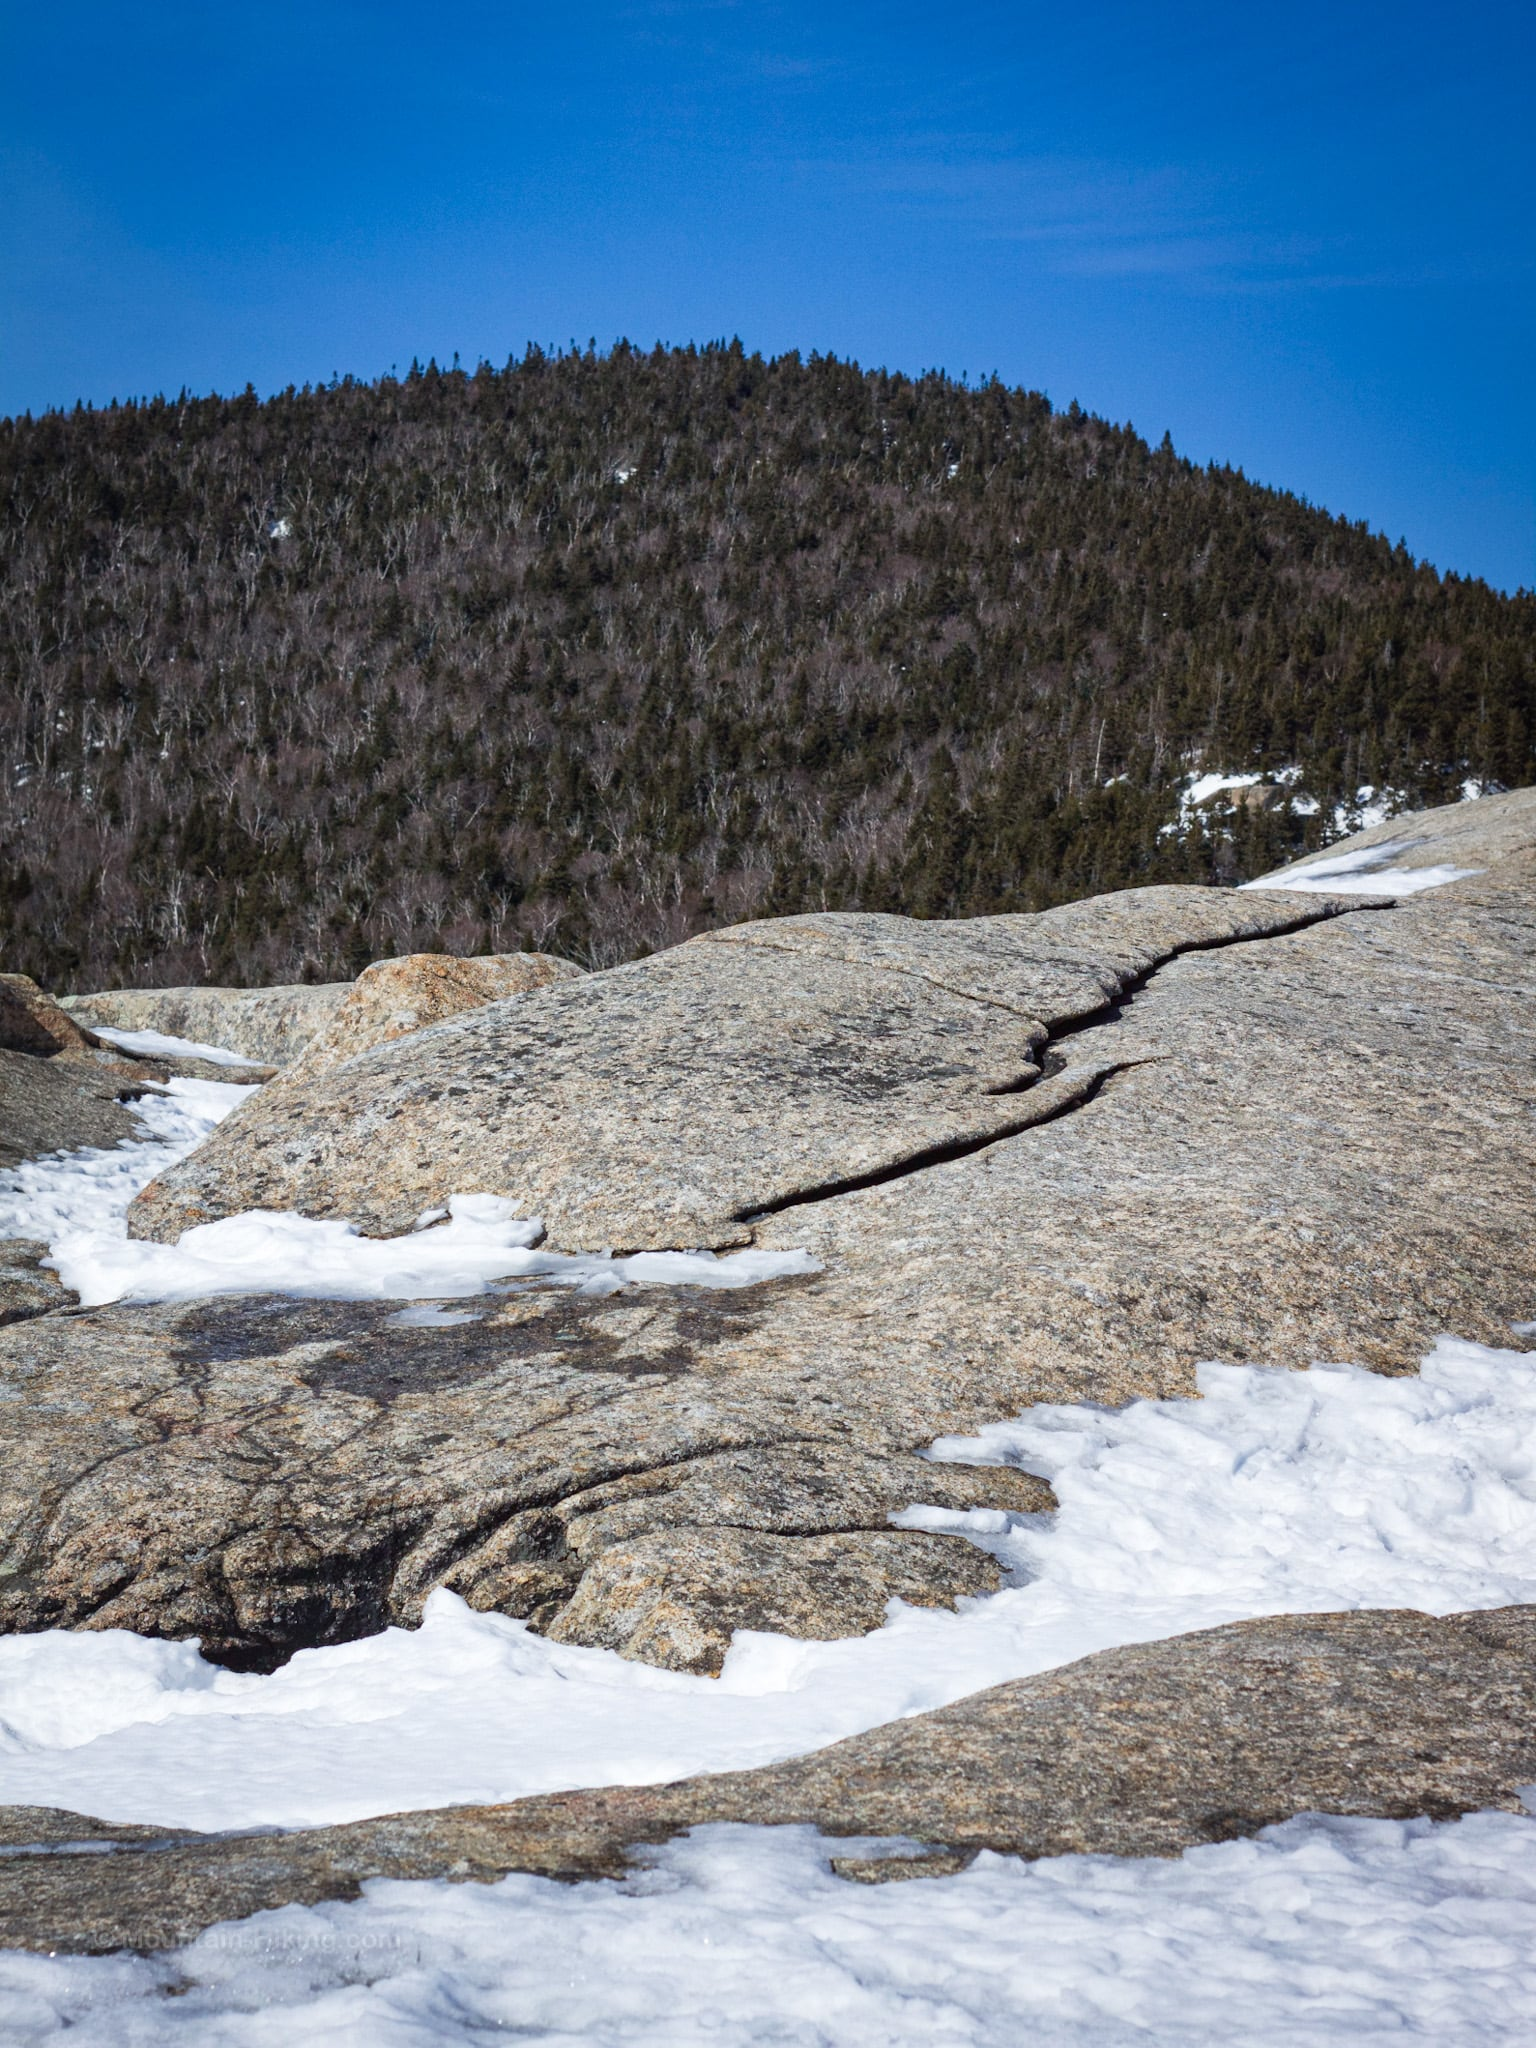 Pitchoff seen from balanced rocks